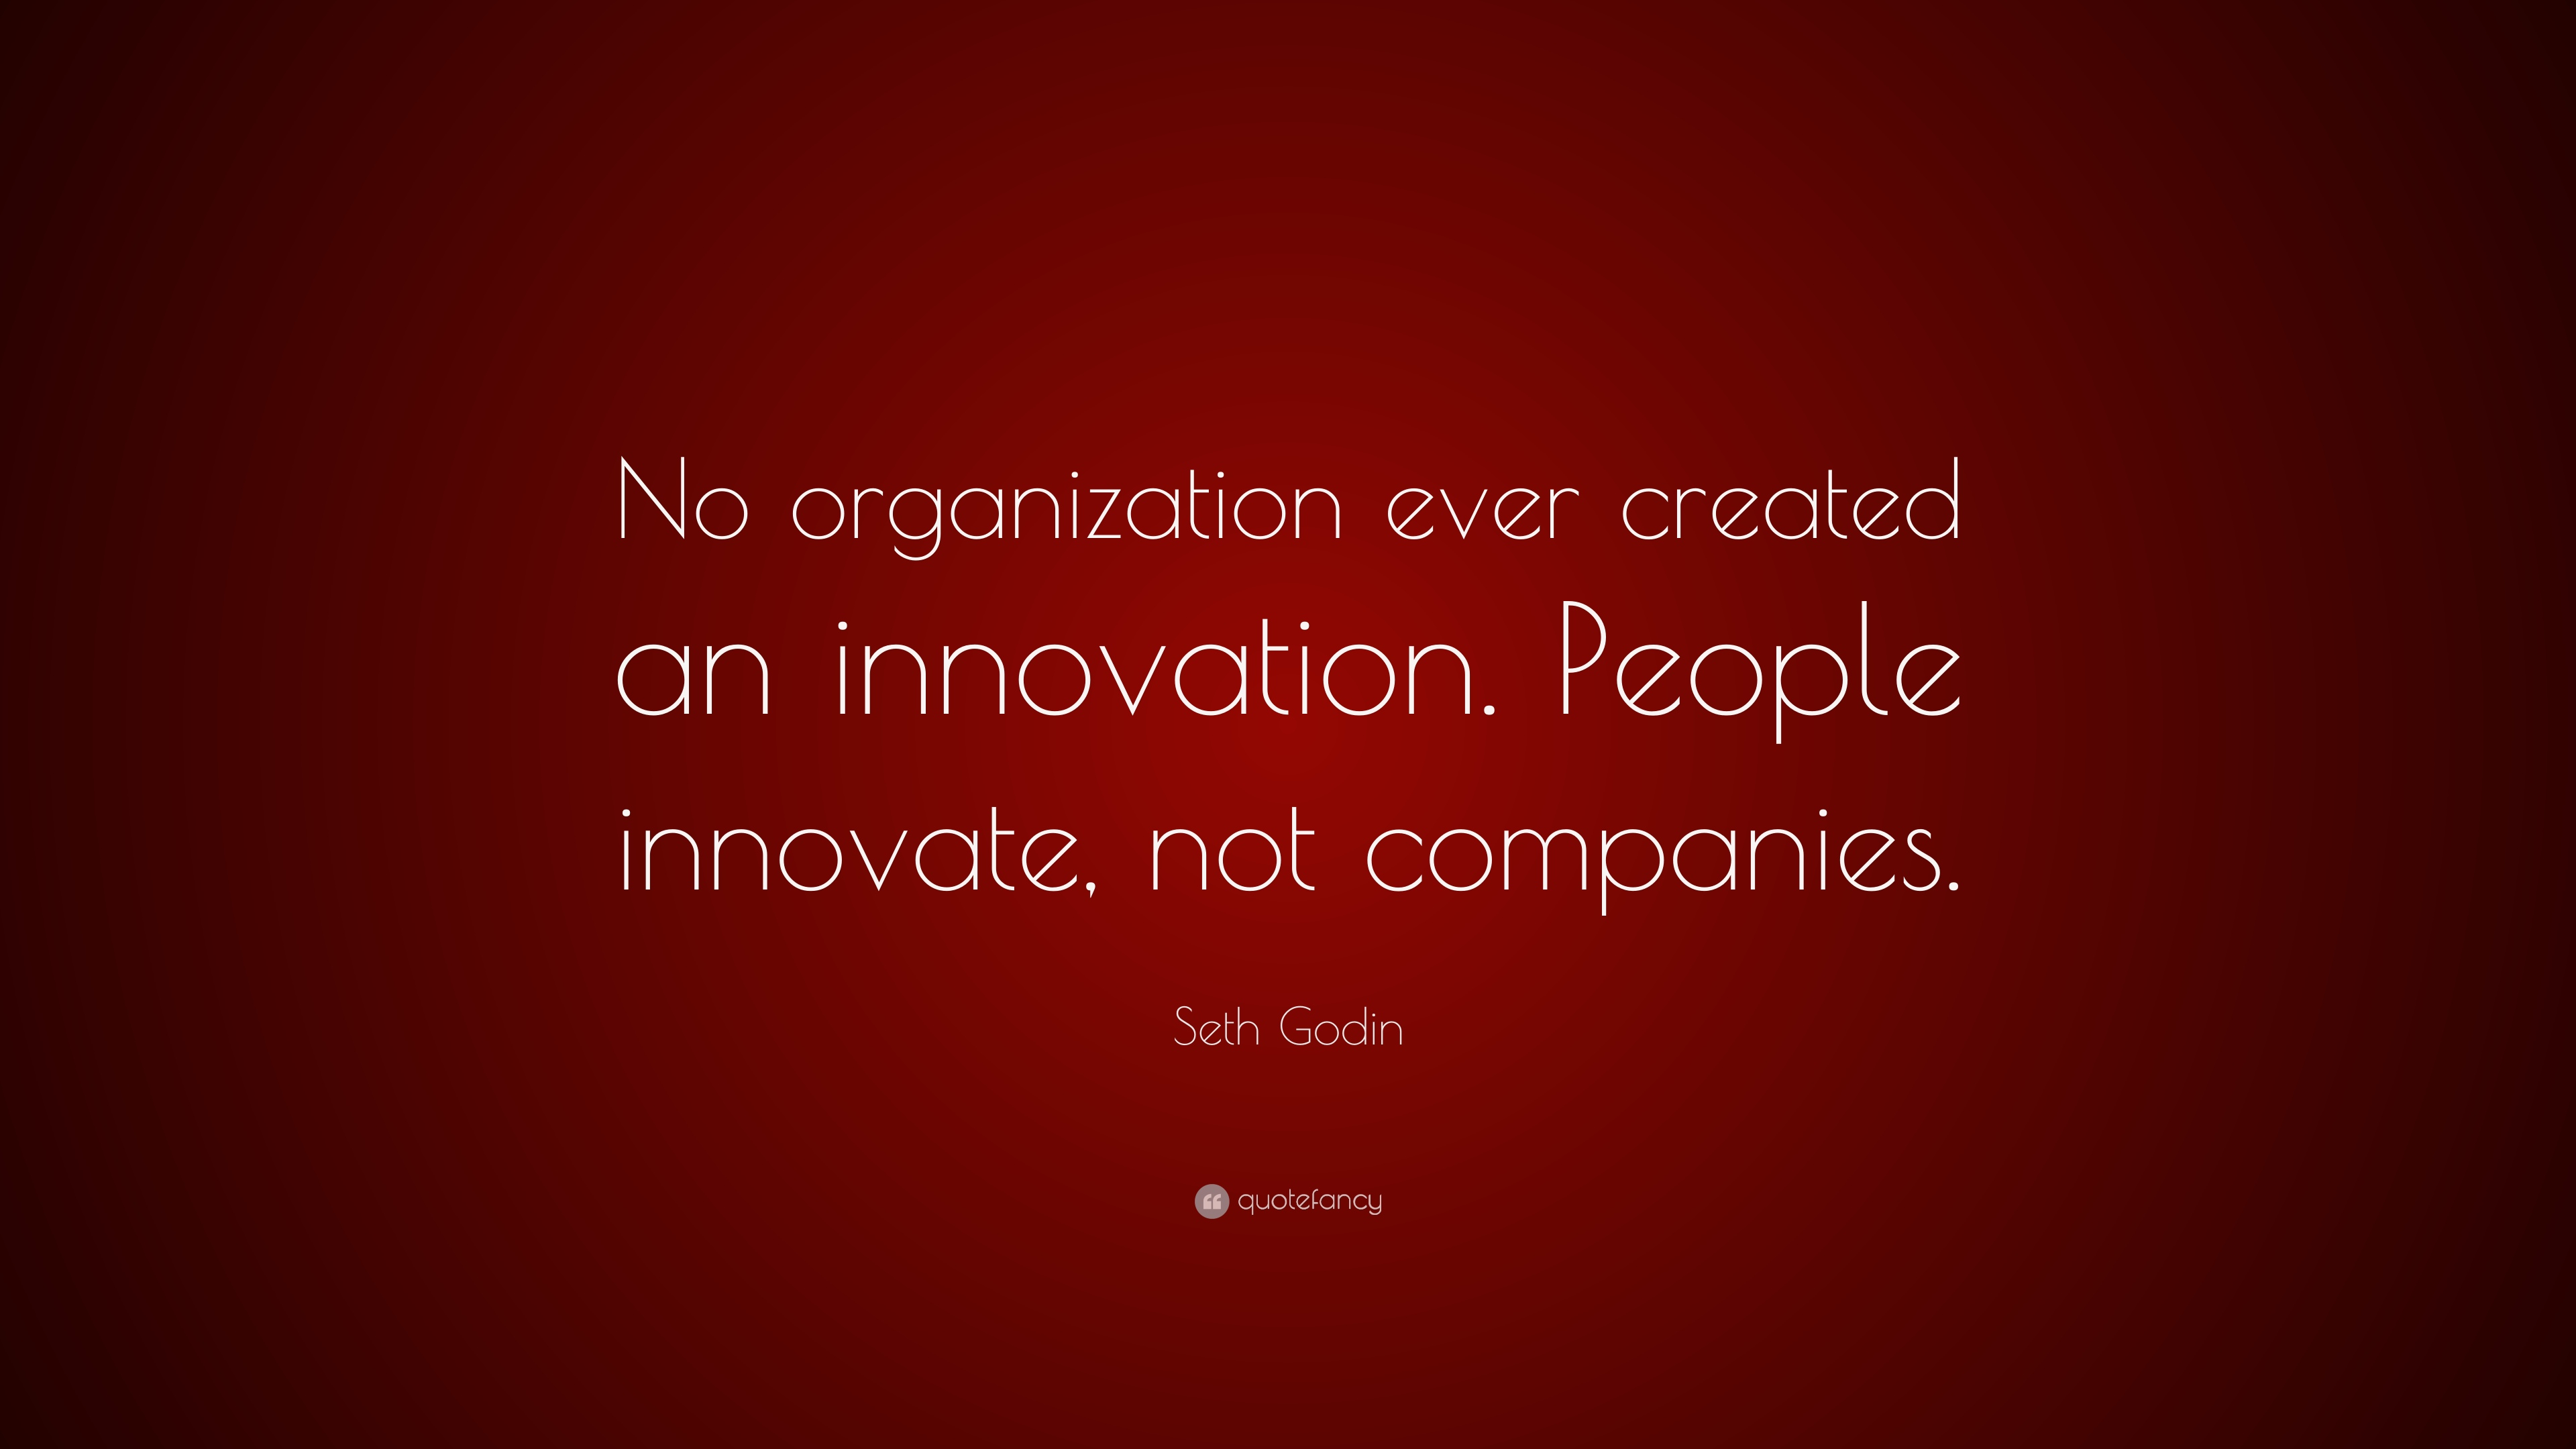 Quotes On Innovation Extraordinary Innovation Quotes 40 Wallpapers  Quotefancy